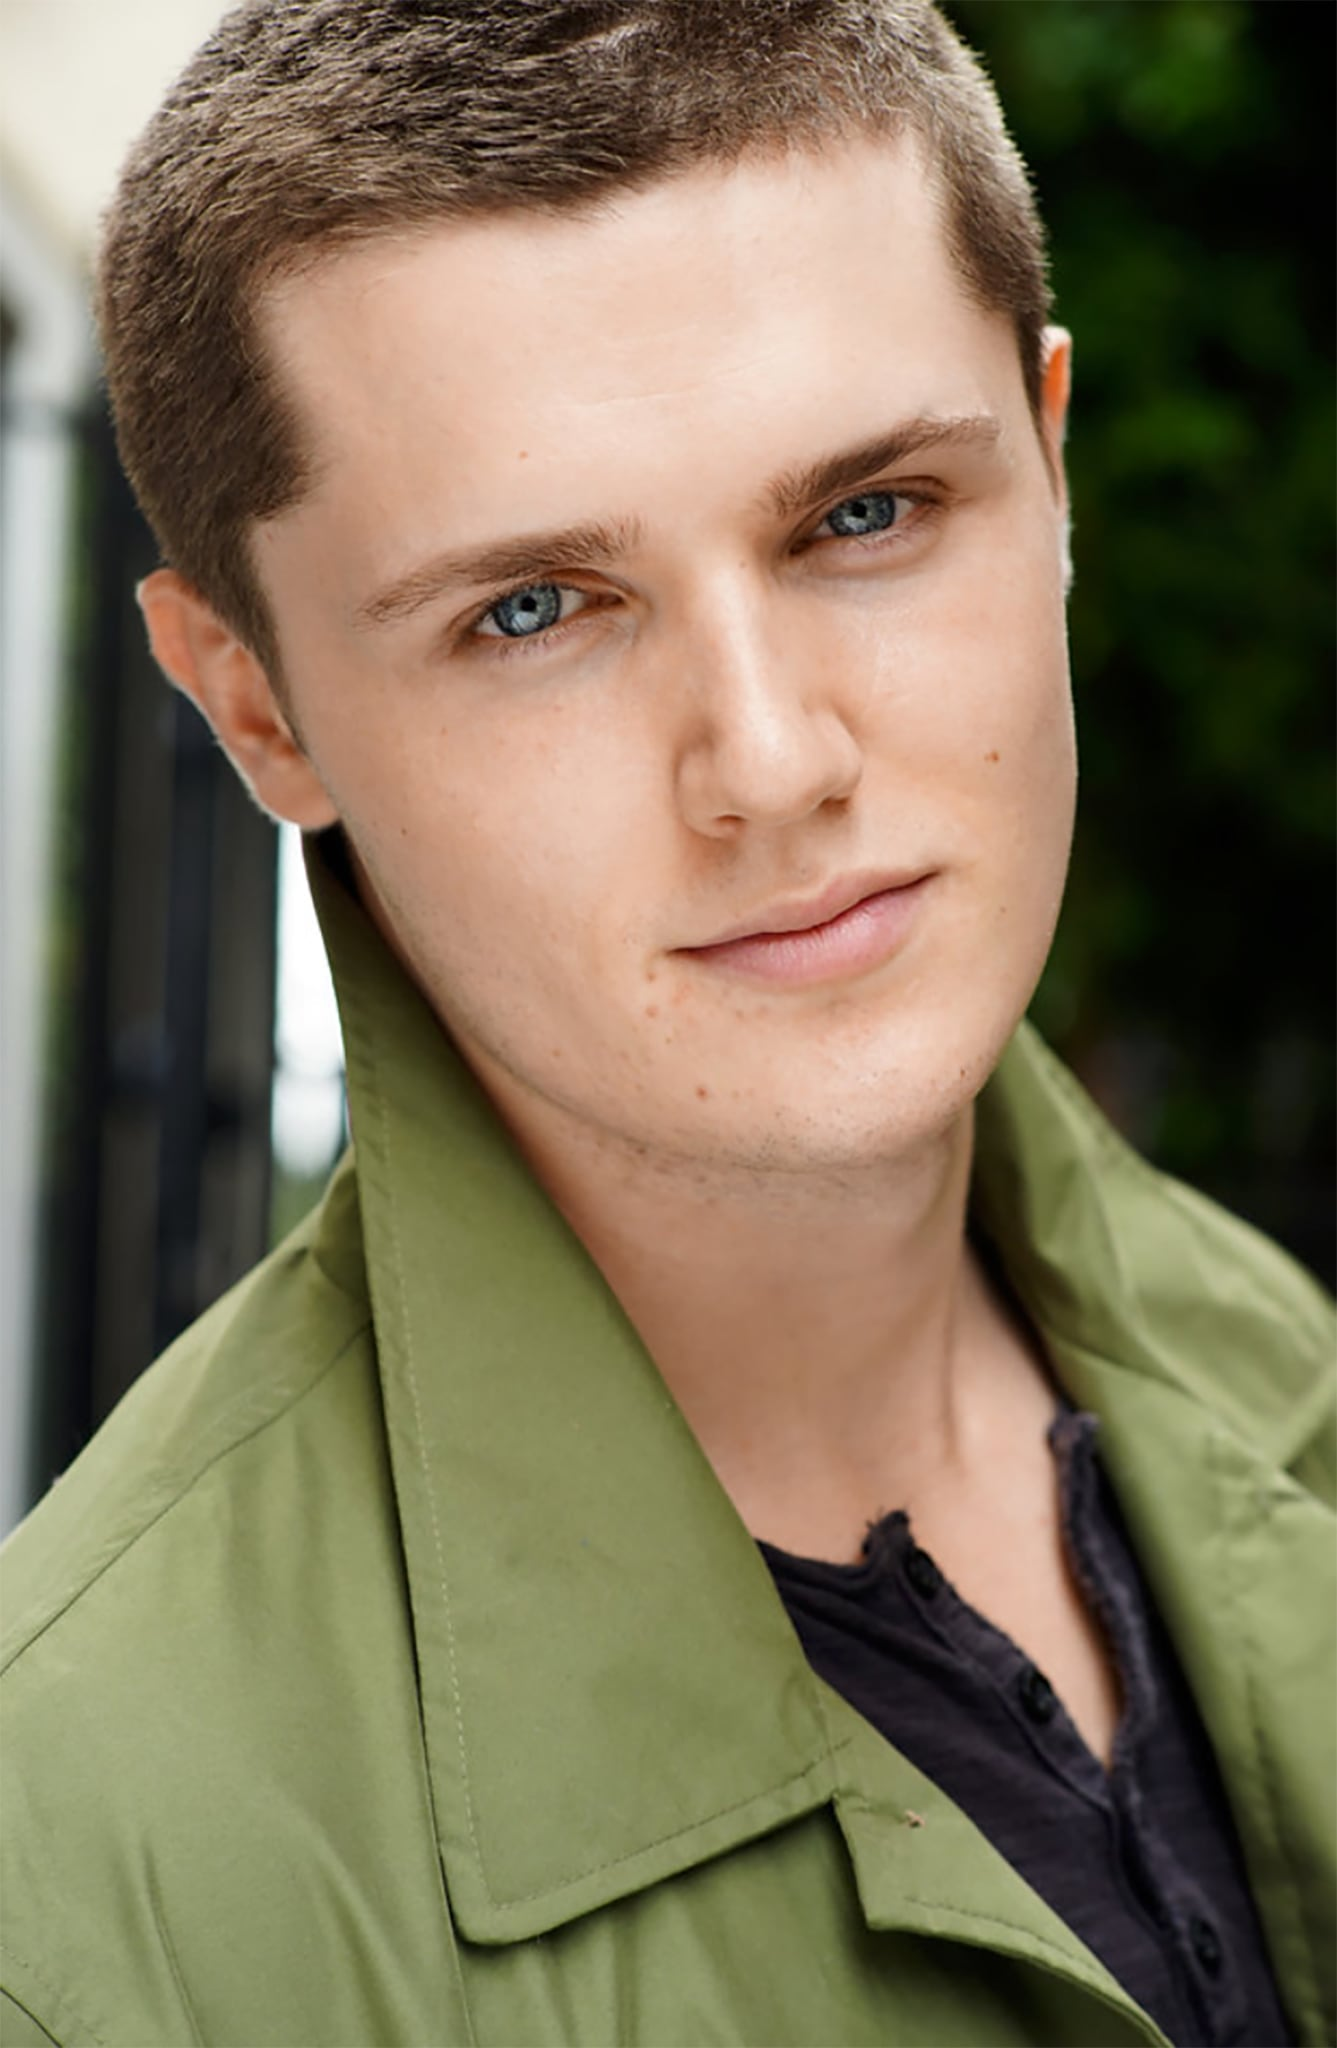 Eugene Simon Short Hair.jpg